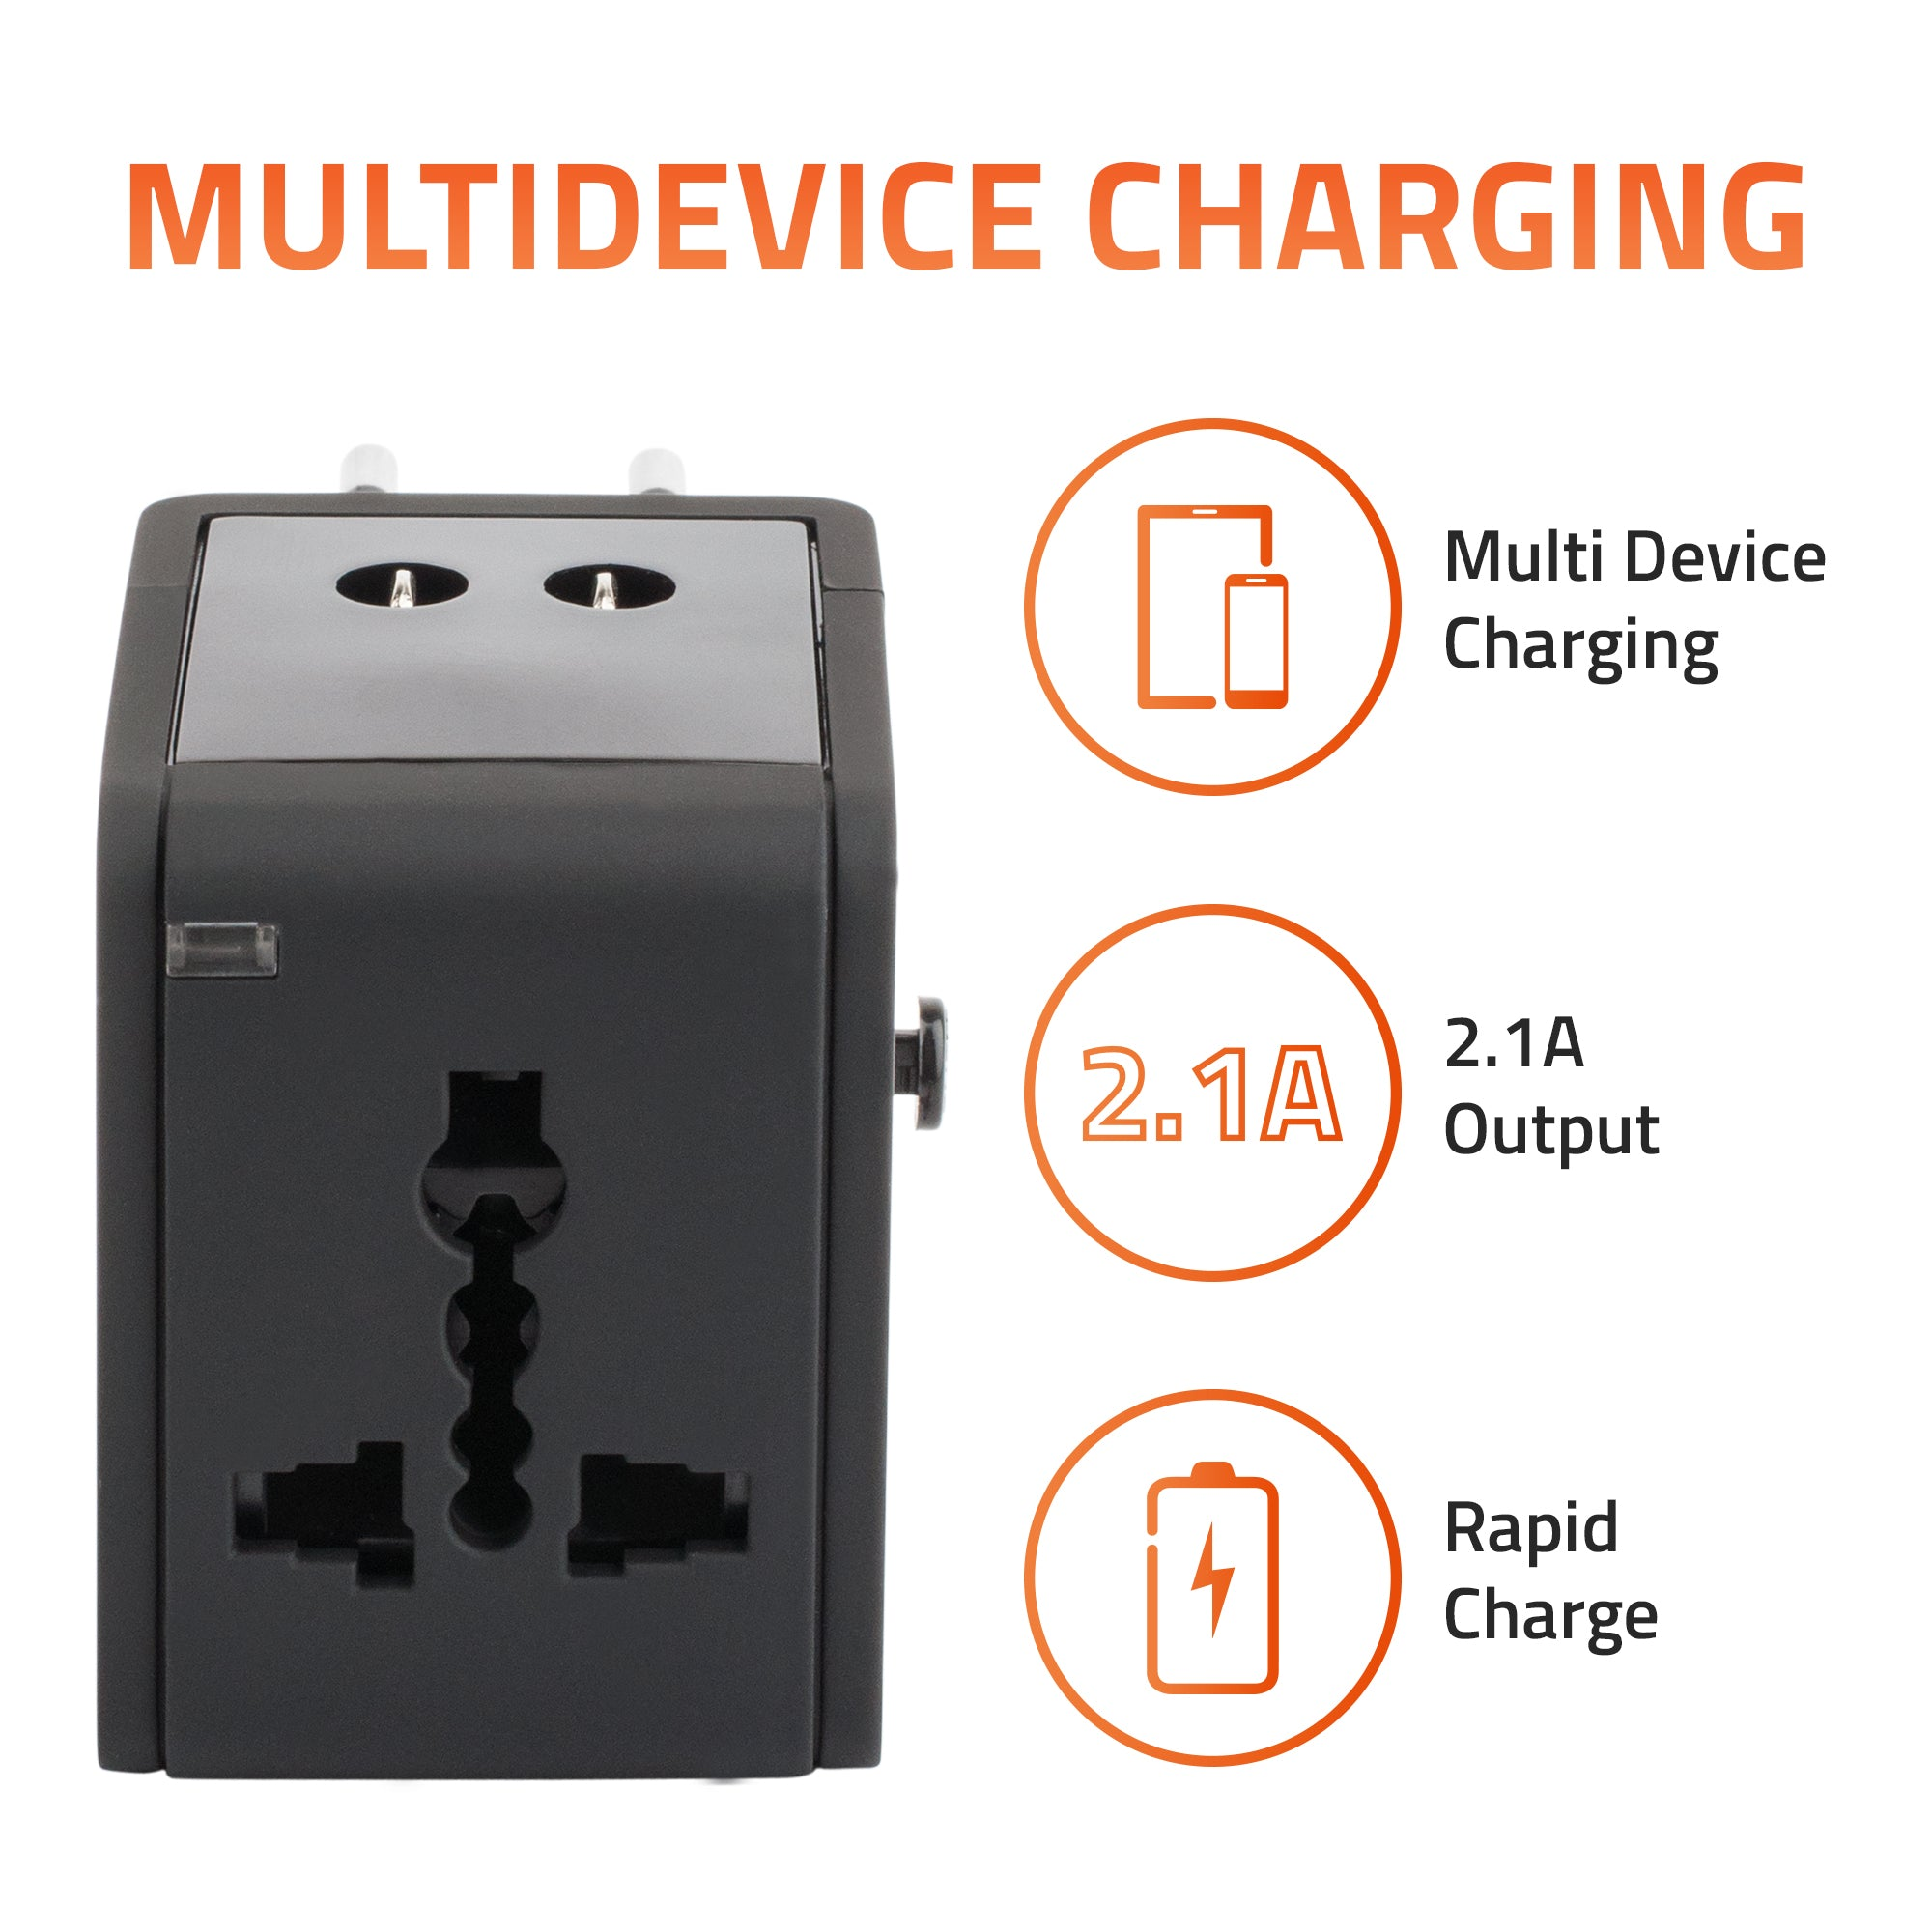 Universal Travel Adapter With 2.1A USB Charging - Artis UV200